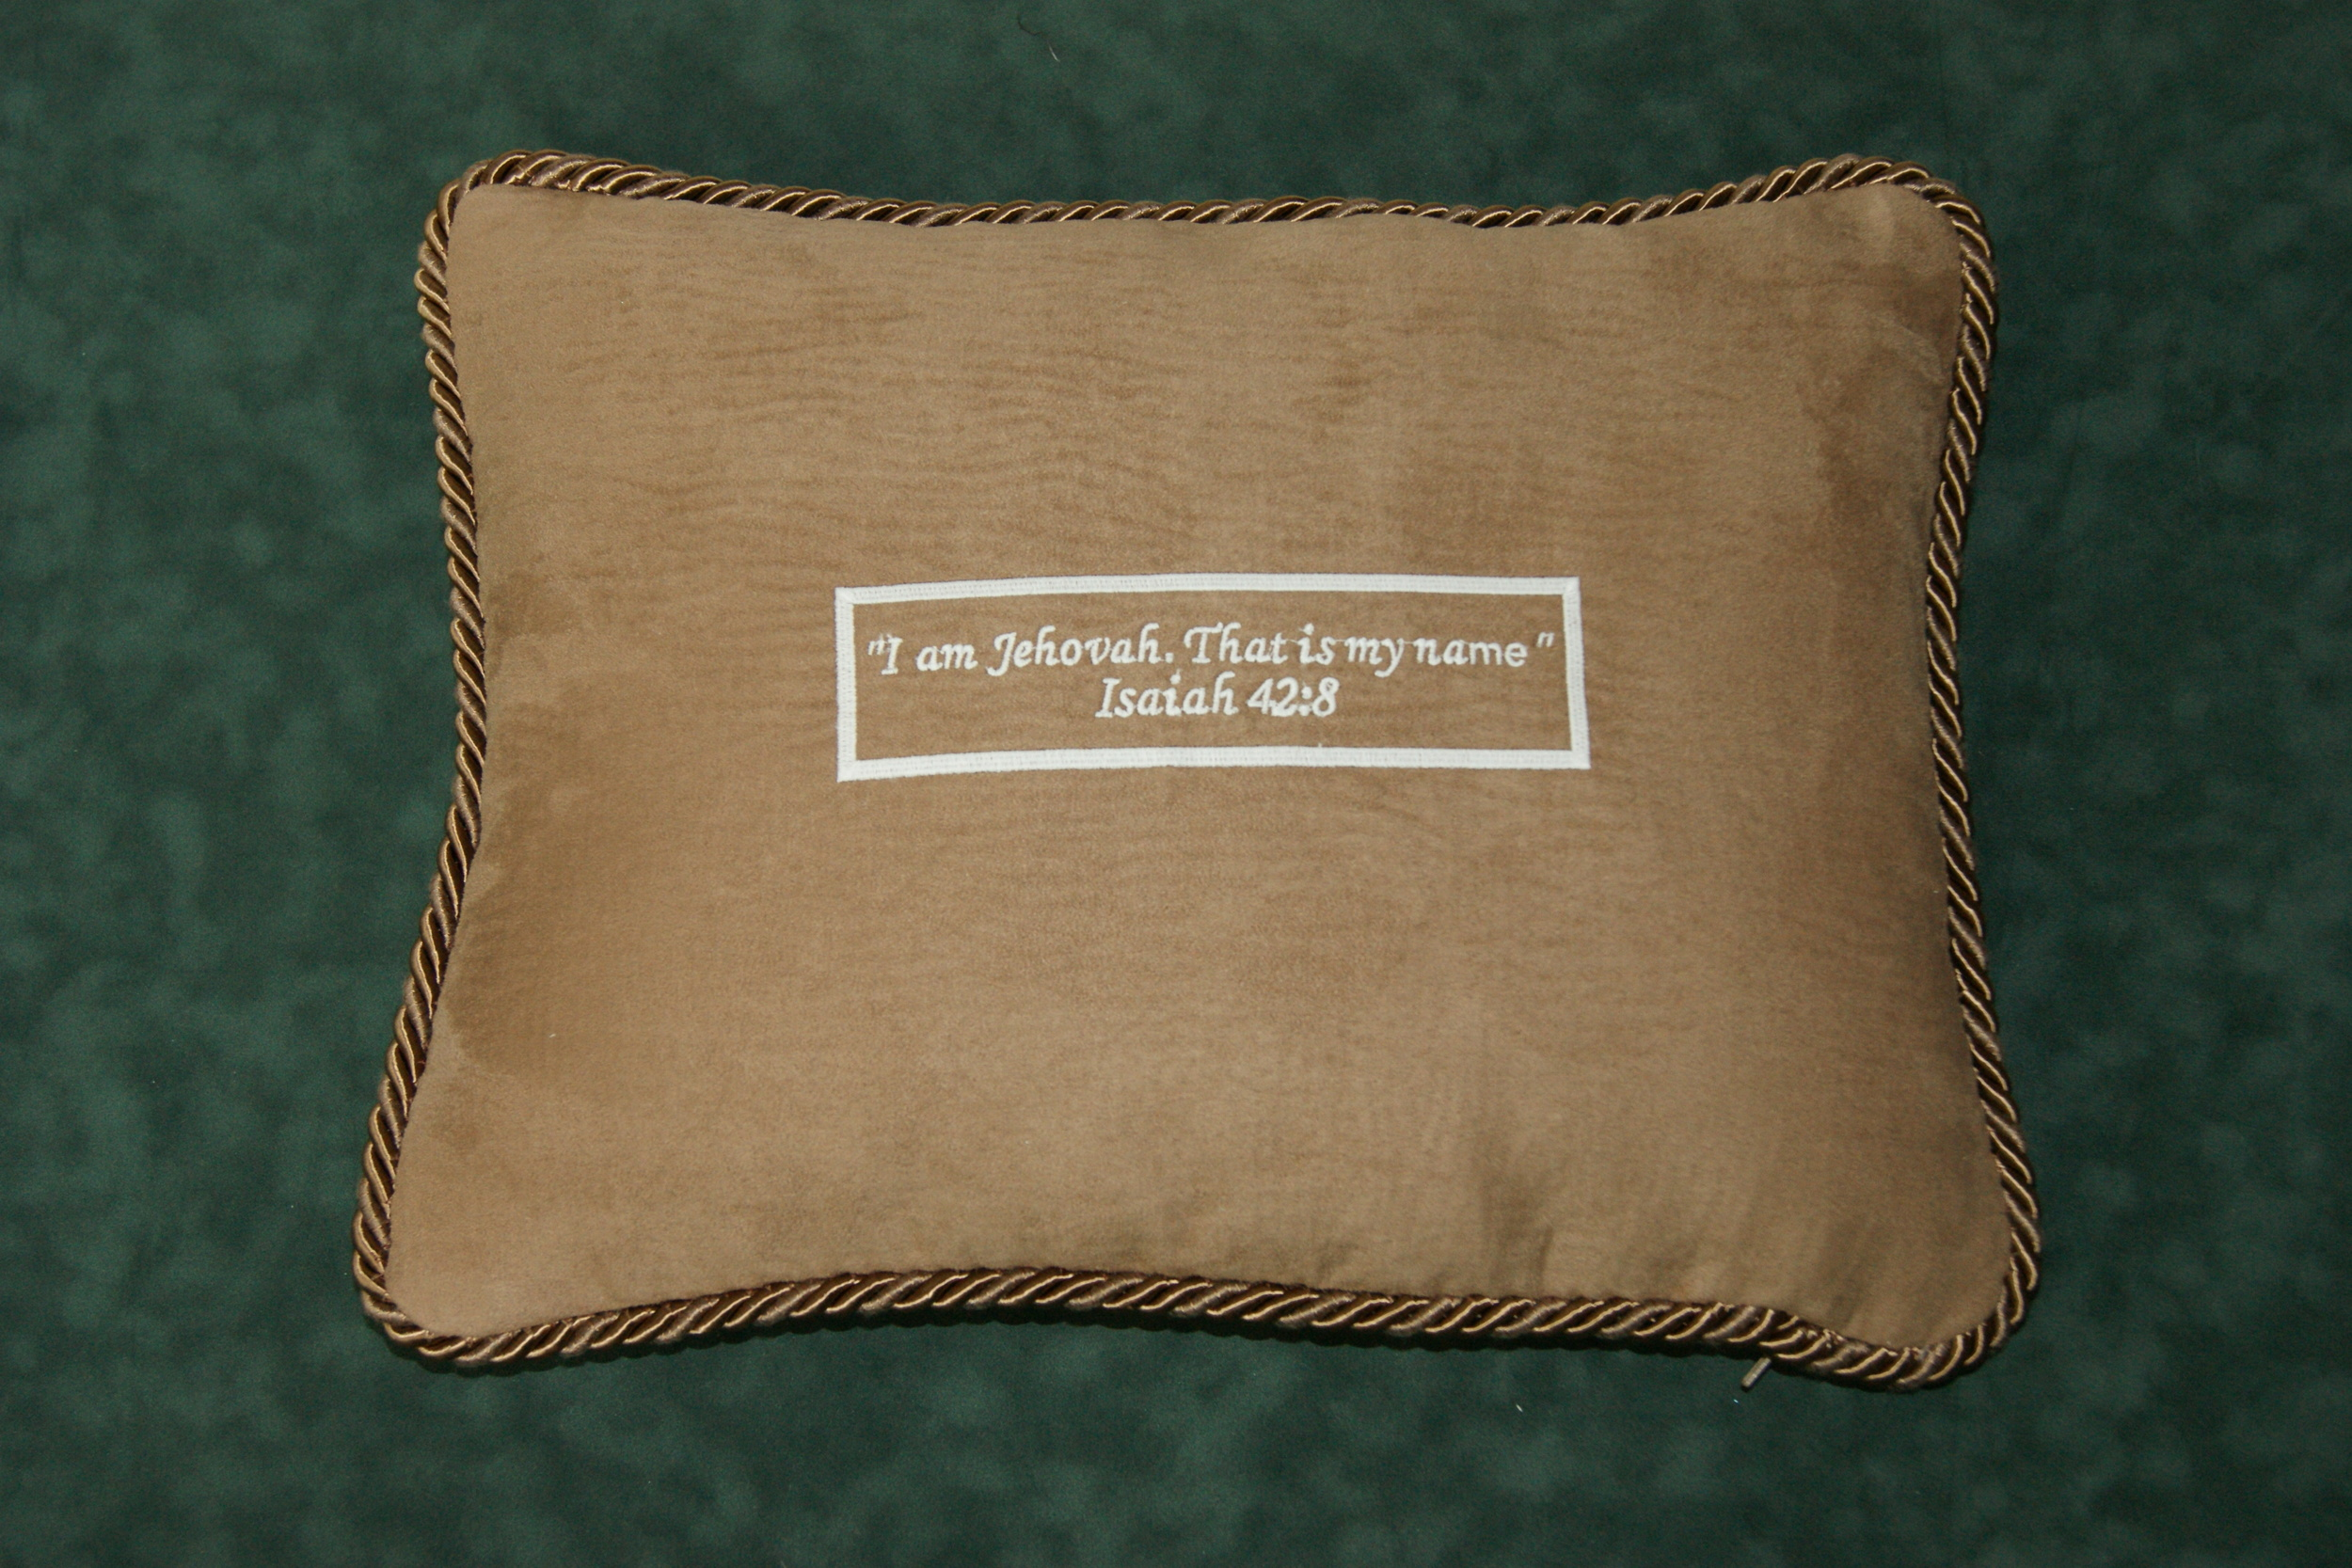 Pillows embroidery - glow in the dark ADD YOVORITE SCRIPTURE FROM ANY BIBLE.